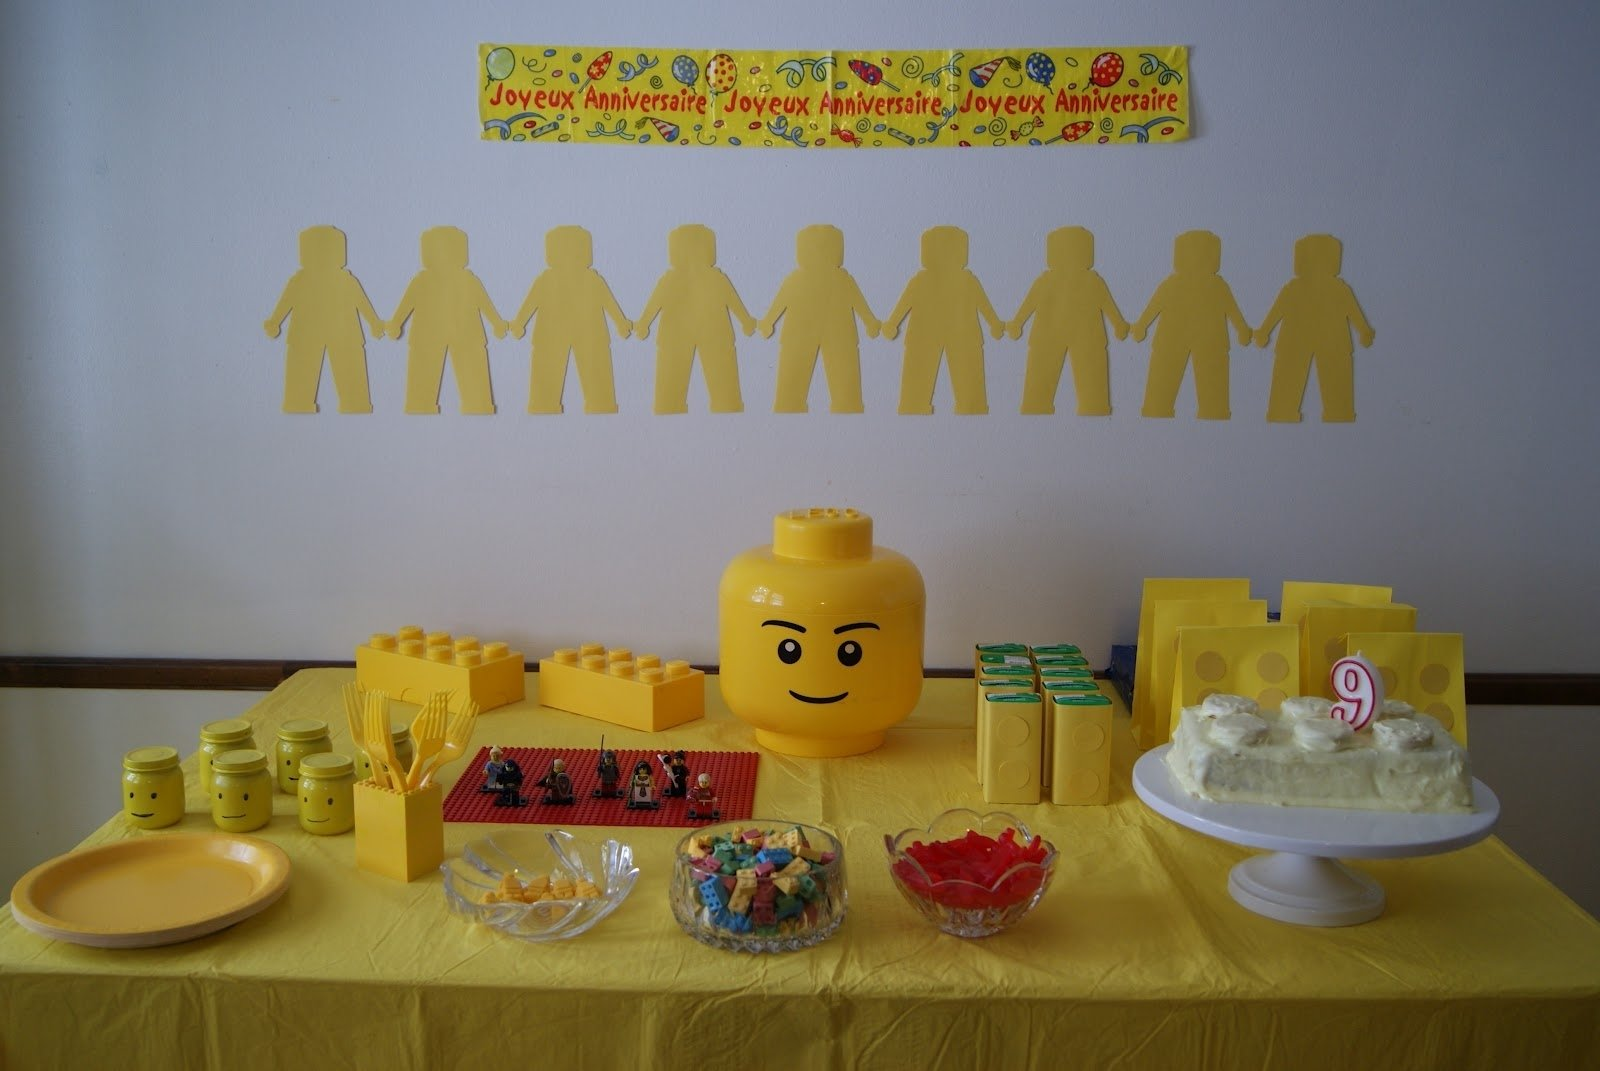 10 Most Recommended 1 Year Old Boy Birthday Party Ideas nest full of eggs yellow lego birthday 9 2020